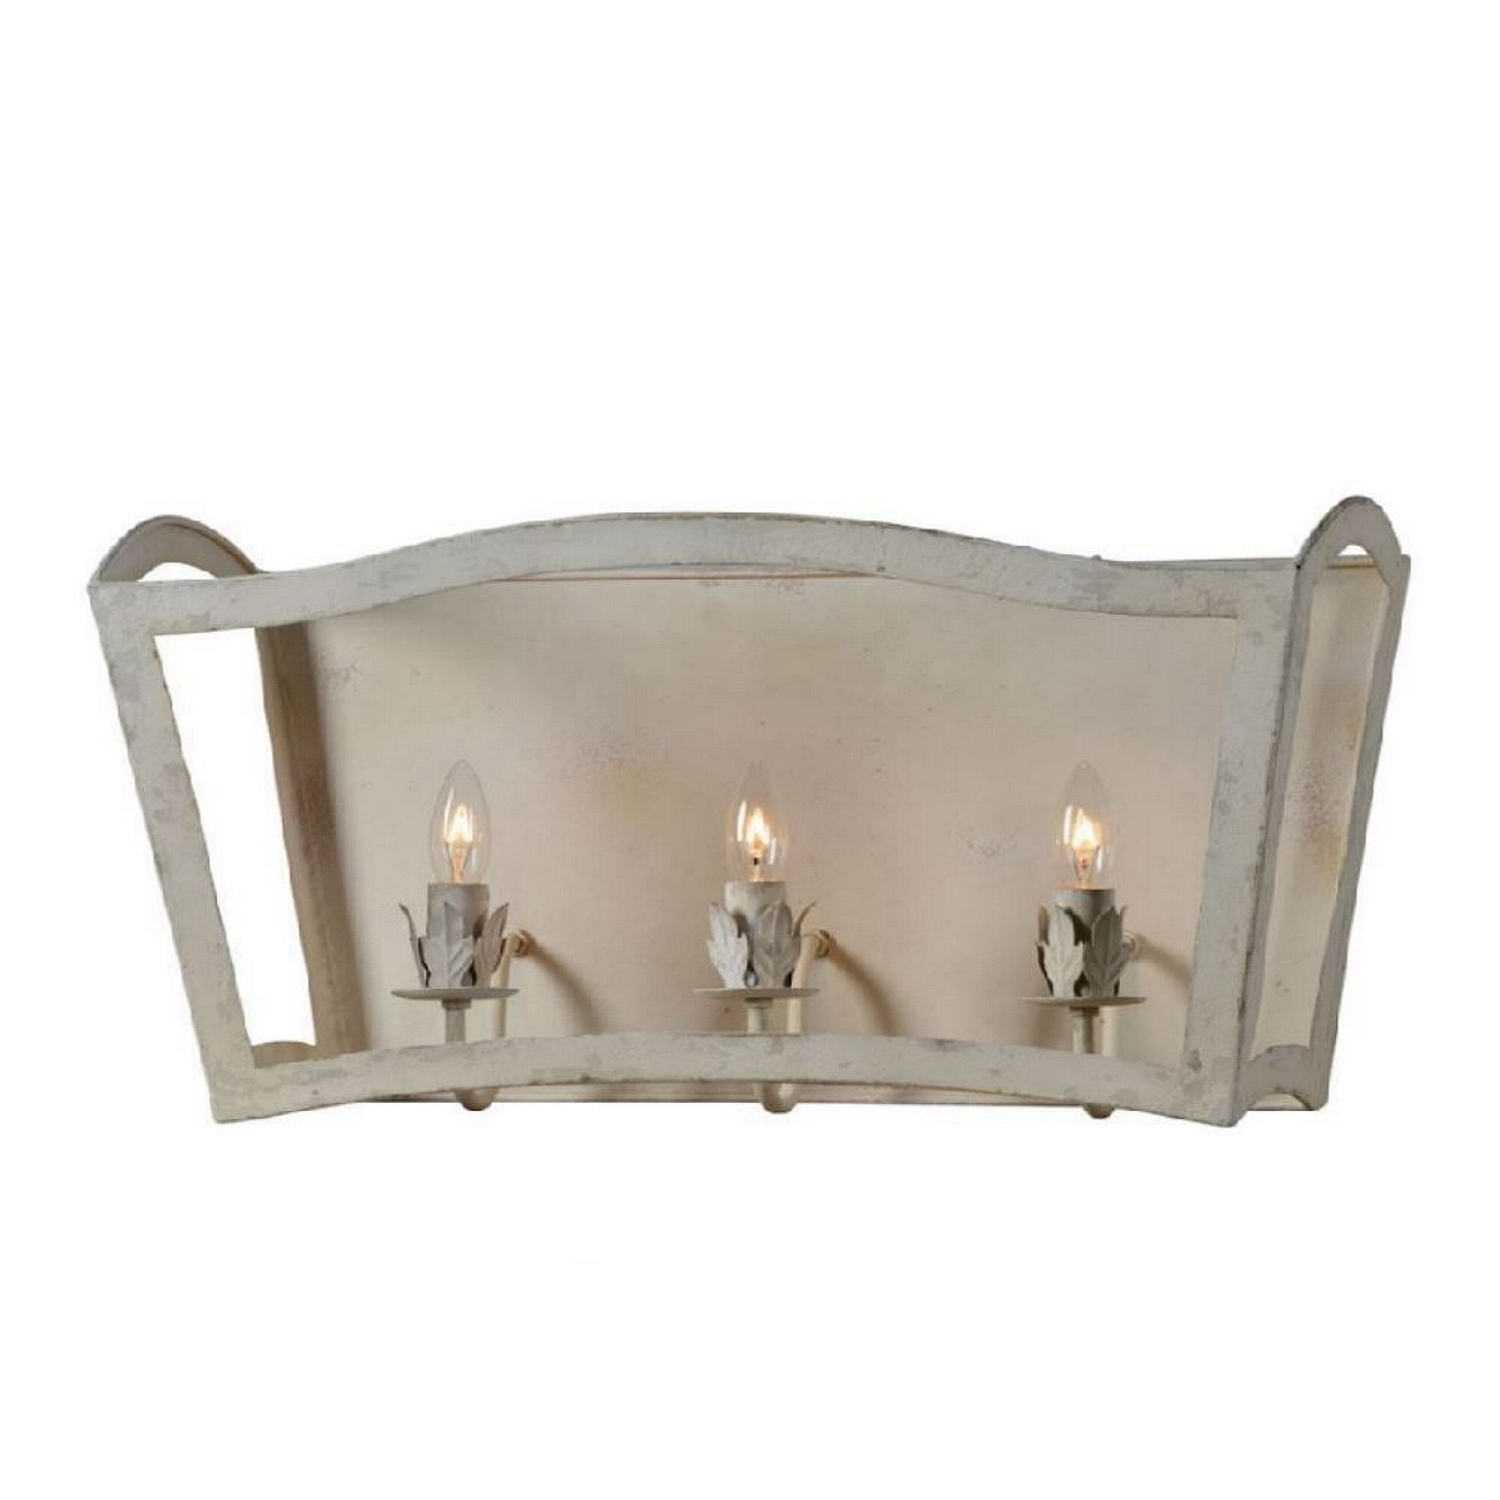 Wall Sconce Light Fixture The Jennifer Aged Off White